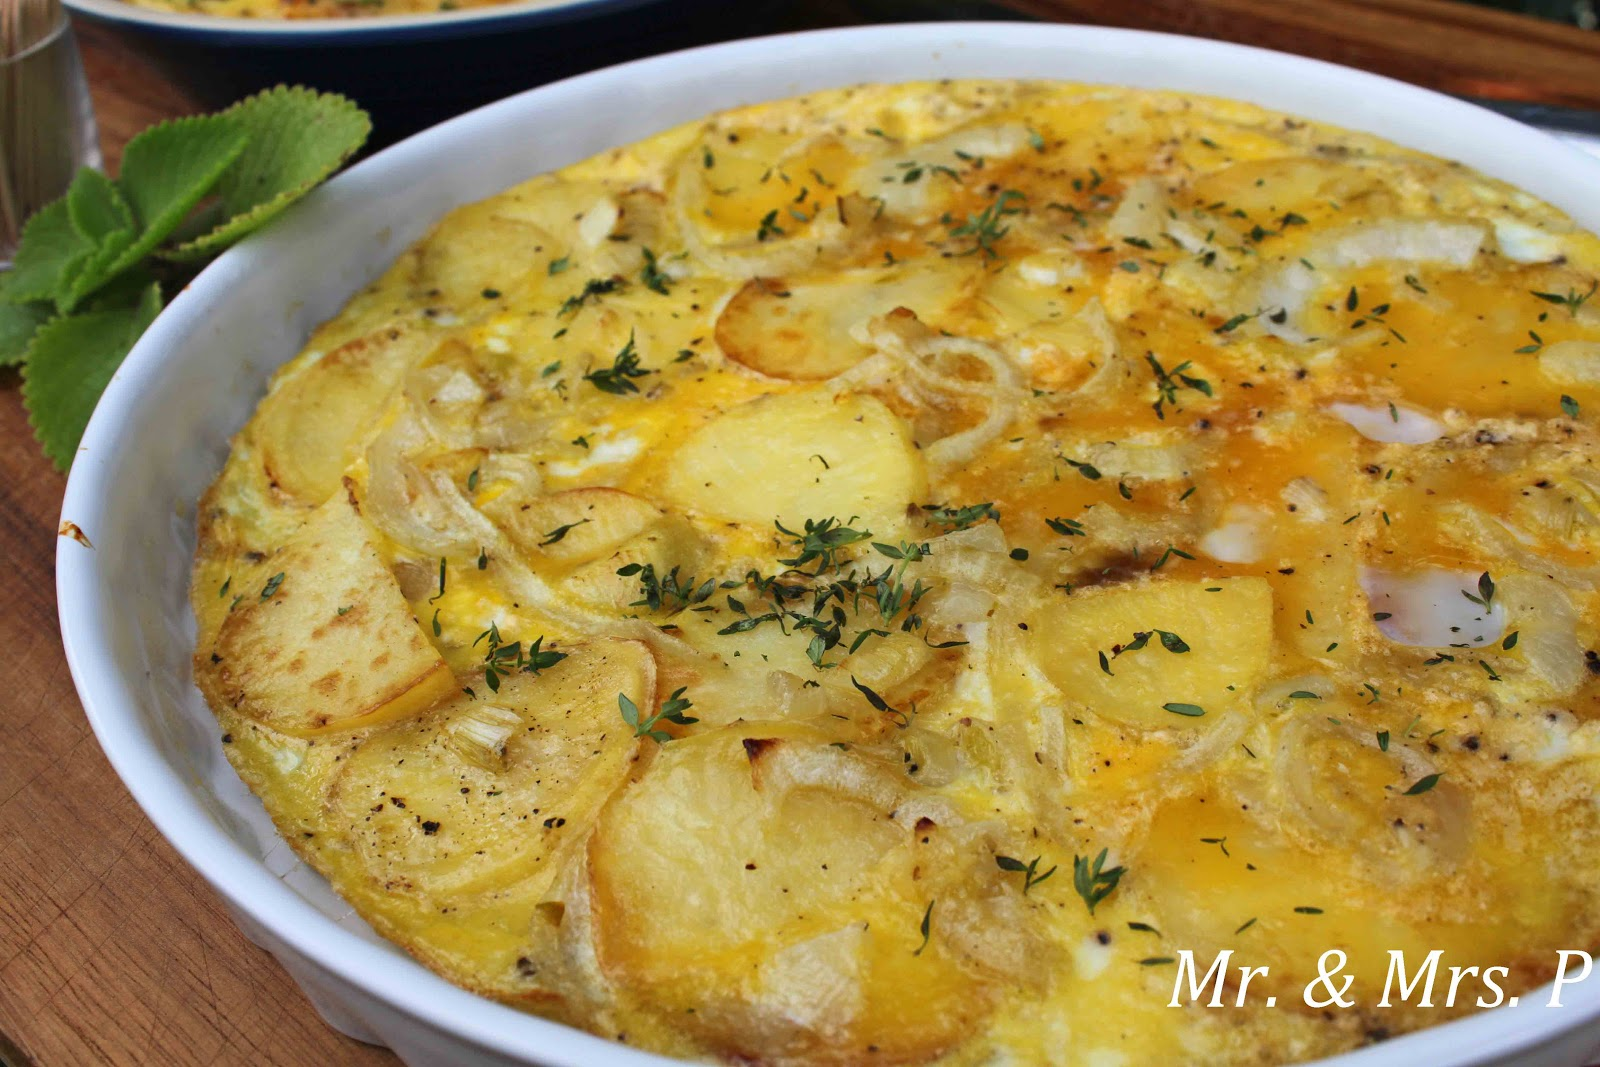 Pictured Above: Tortilla Española with Potatoes and Onions)